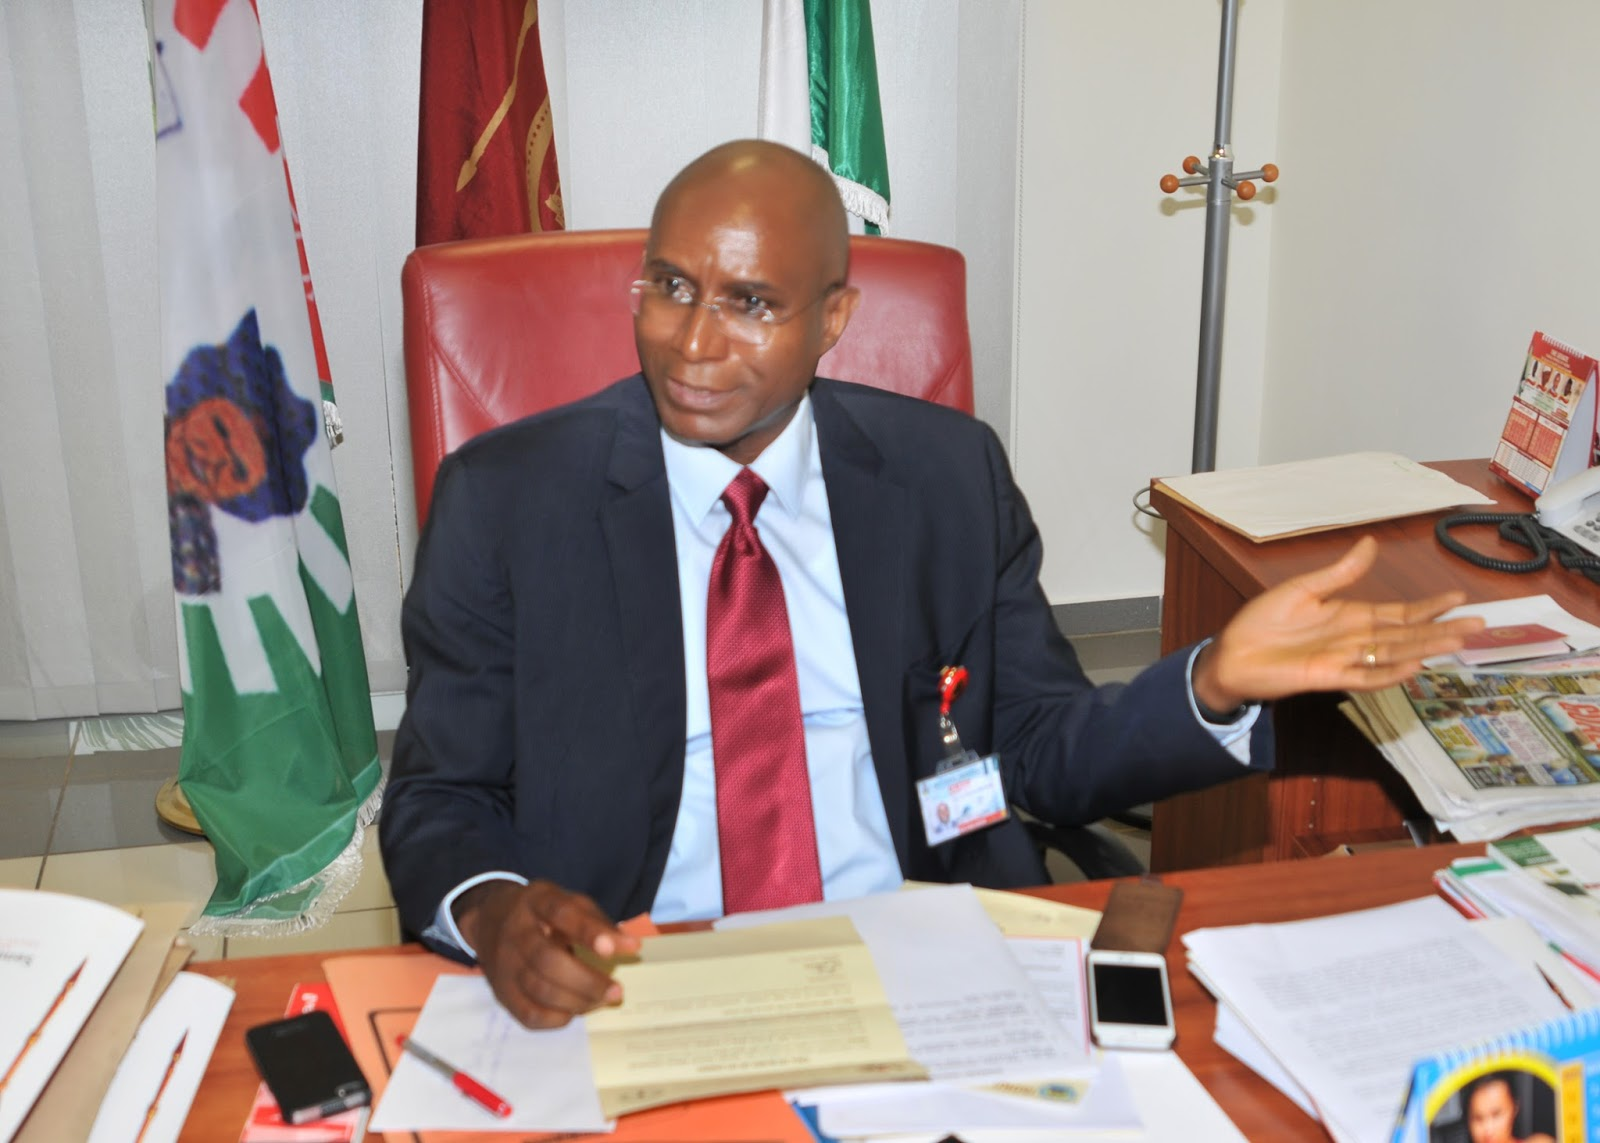 'Mace Thief' becomes DSP as Principal Officers emerge in Nigeria's NASS